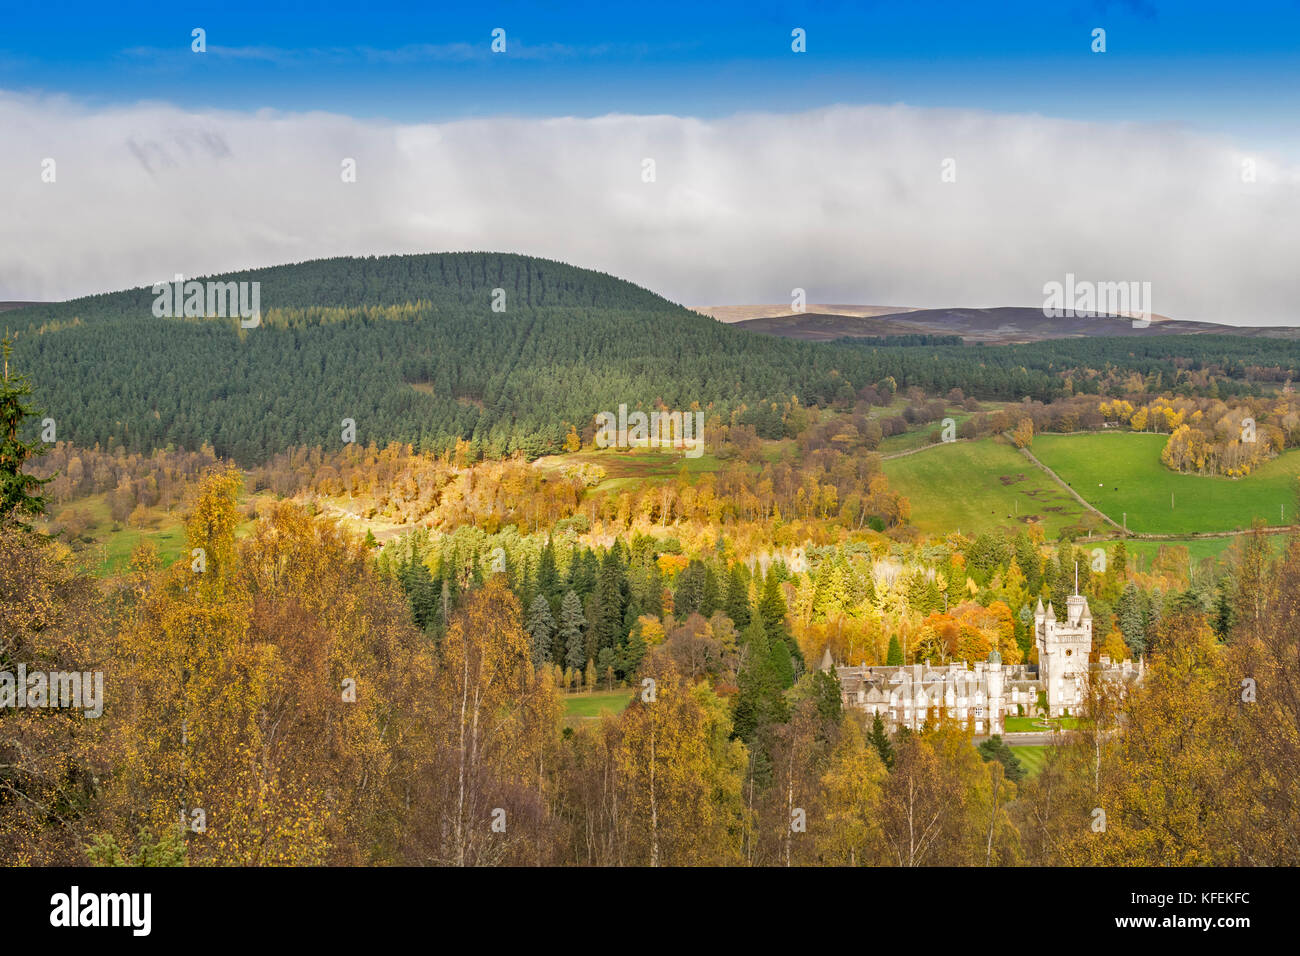 BALMORAL CASTLE ROYAL DEESIDE ABERDEENSHIRE SCOTLAND SUNLIGHT ON THE CASTLE AND HILLS AND BIRCH TREES WITH AUTUMN - Stock Image